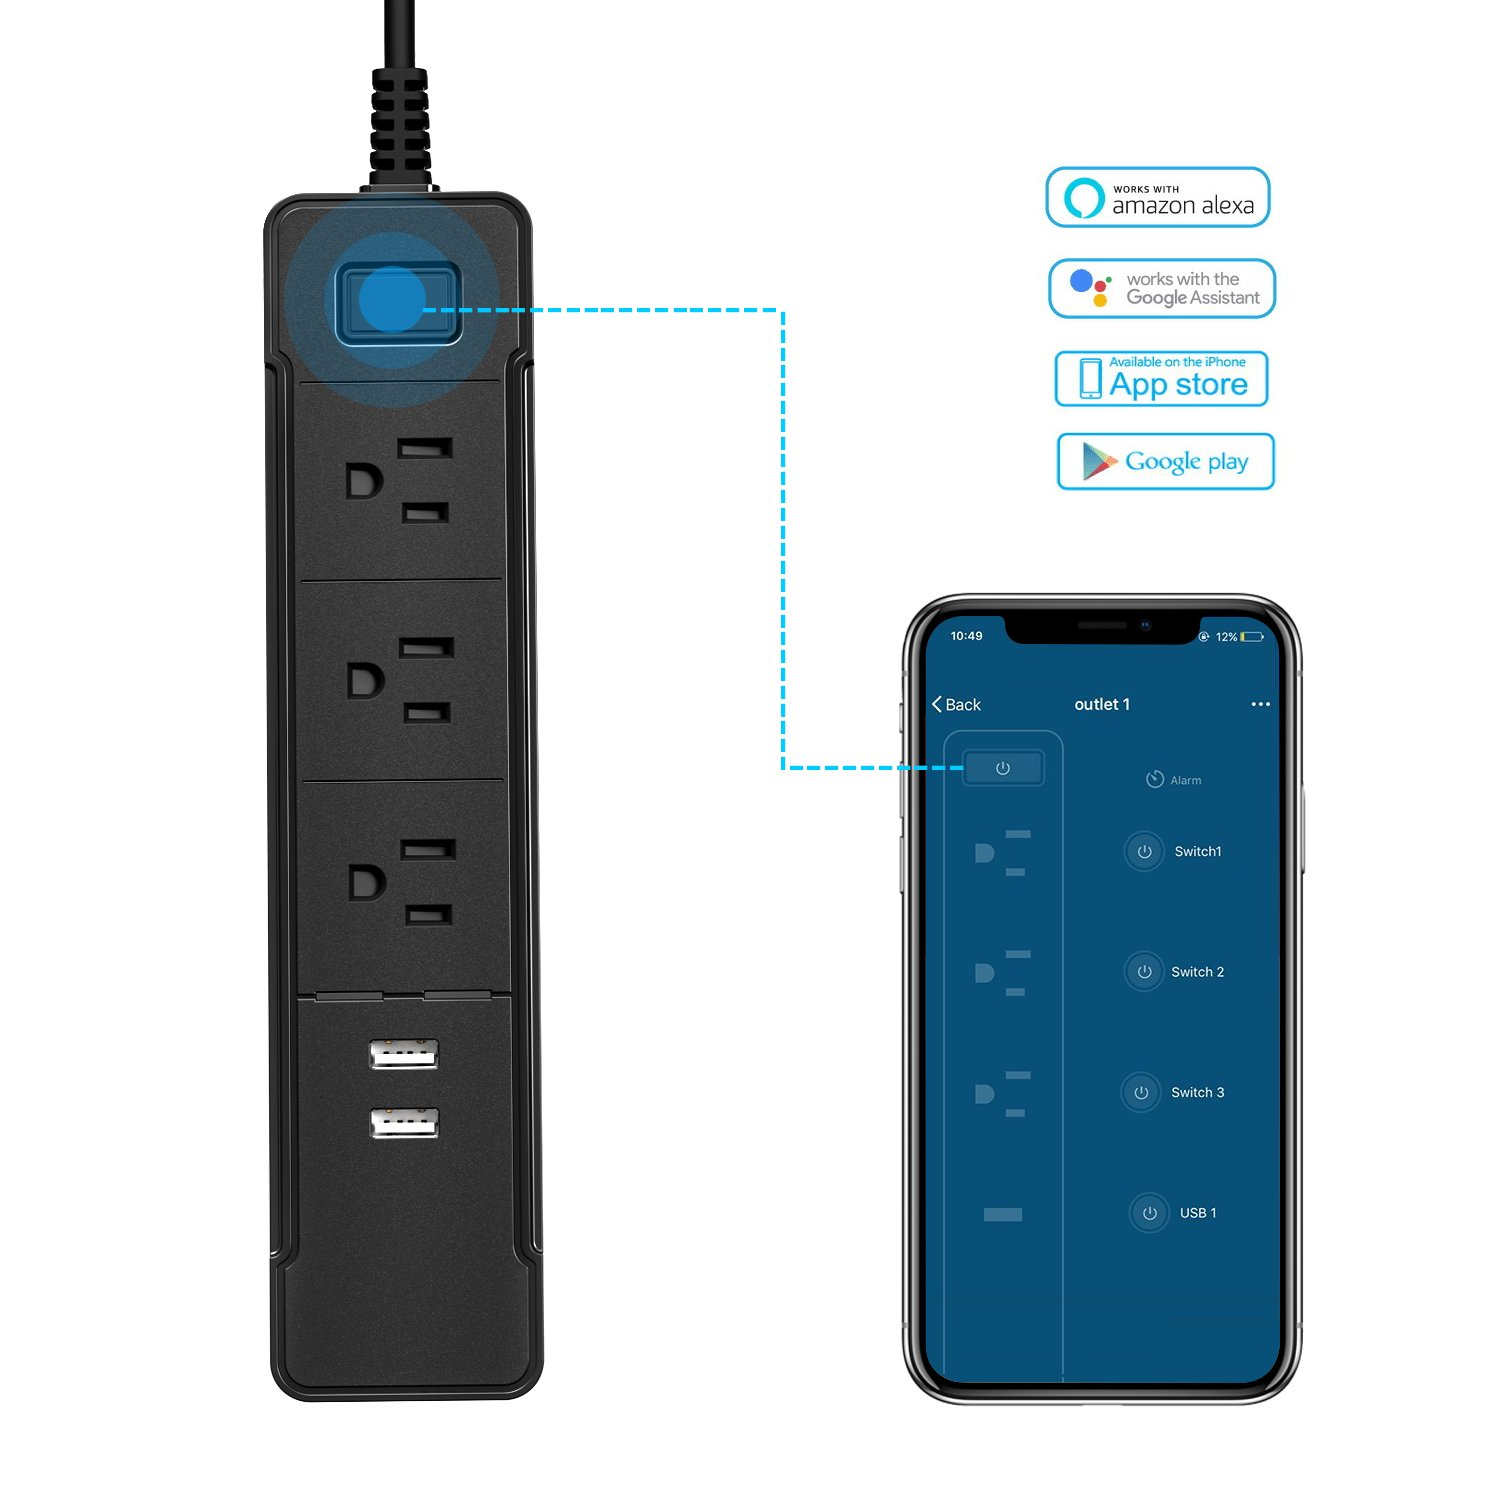 ERQIYU Wifi Smart Power Strip Alexa Surge Protector with 2 USB Charging Ports and 3 Smart AC Plugs for Power Socket Outlet Switches, Voice Controlled by Amazon Echo & Google Home (Black)